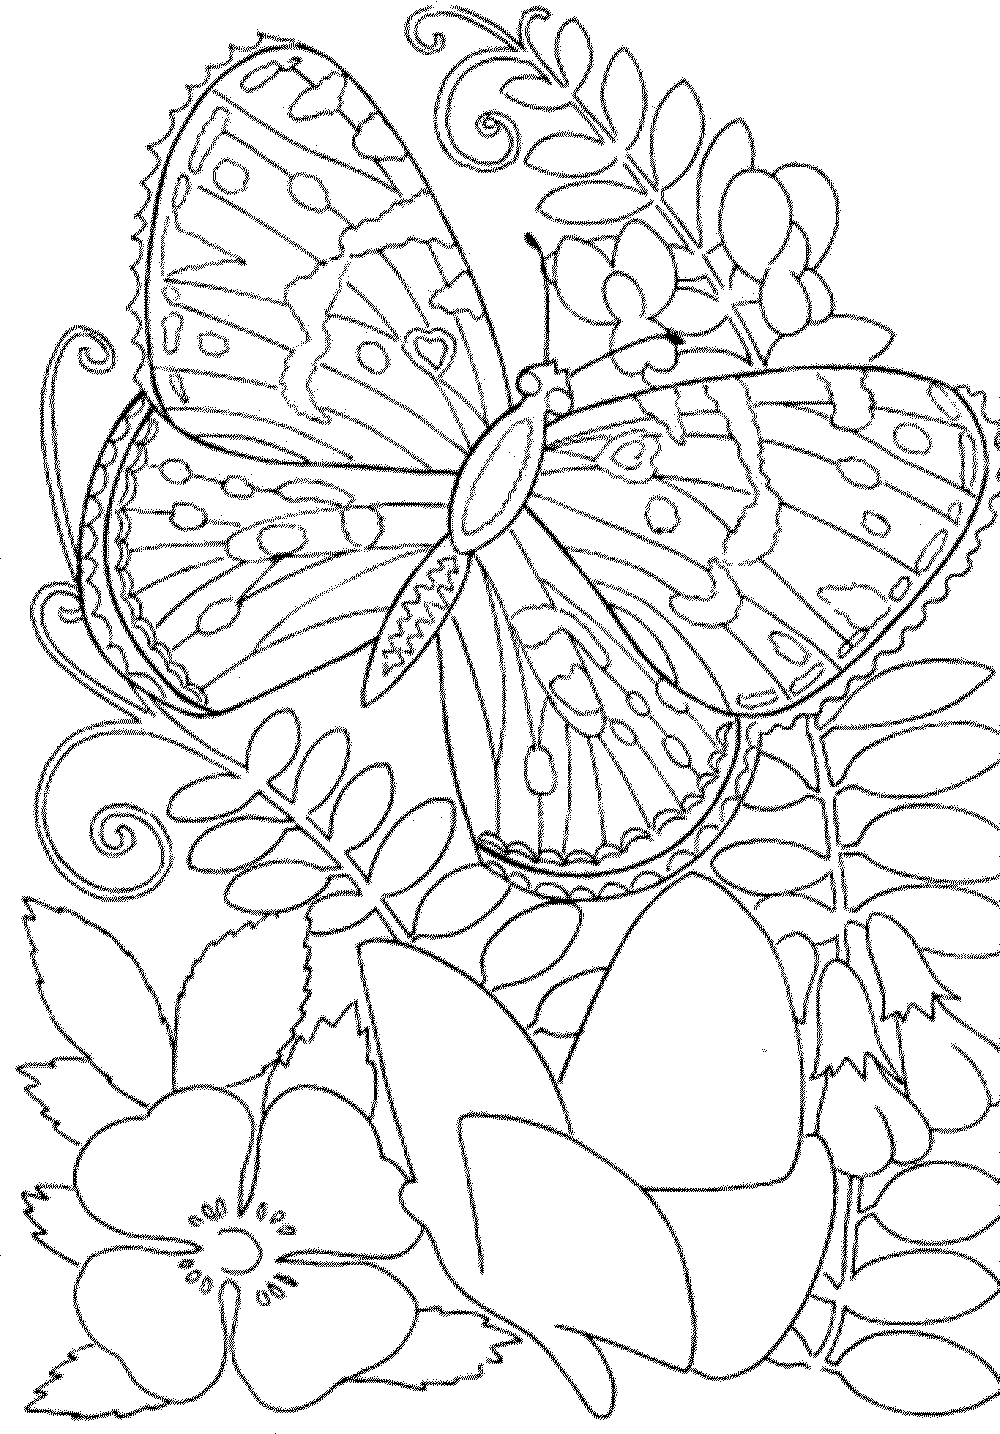 Coloring Pages ~ Coloring Pages Free Printableook Photo Inspirations - Free Printable Coloring Books For Adults